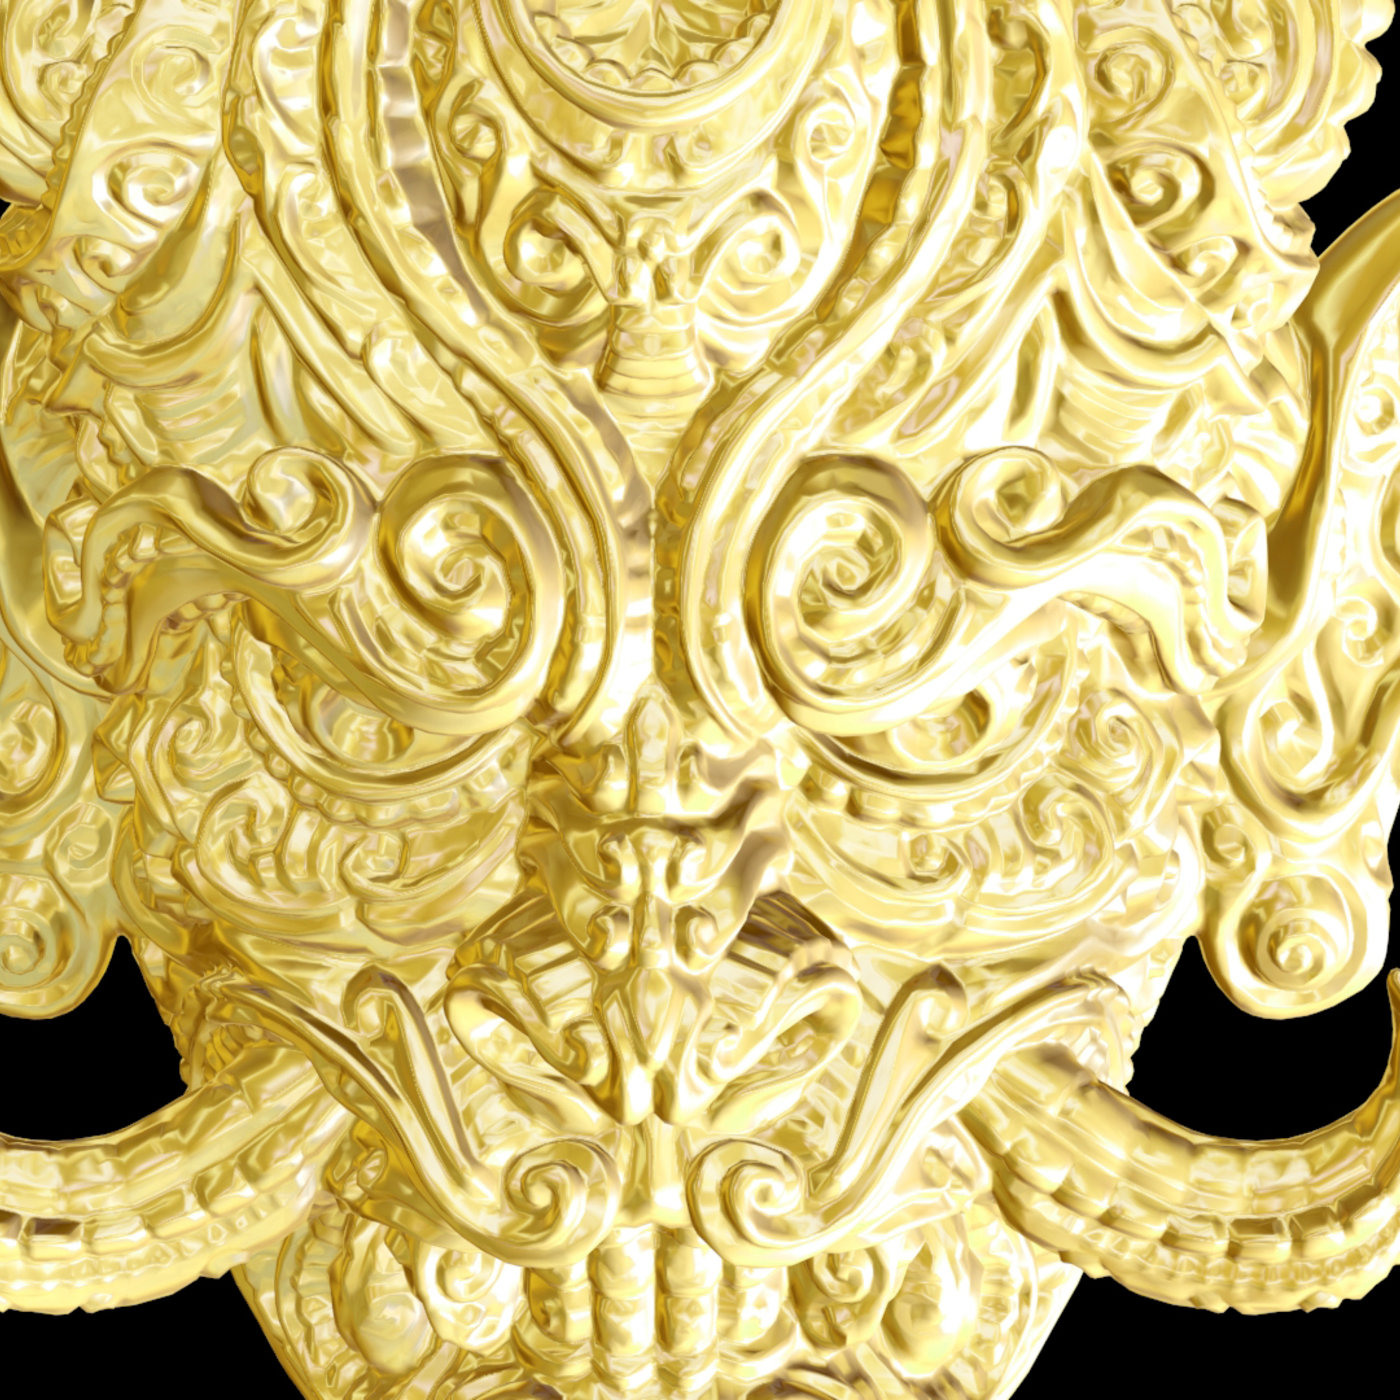 Dragon Chinese Sculpture pendant jewelry gold necklace